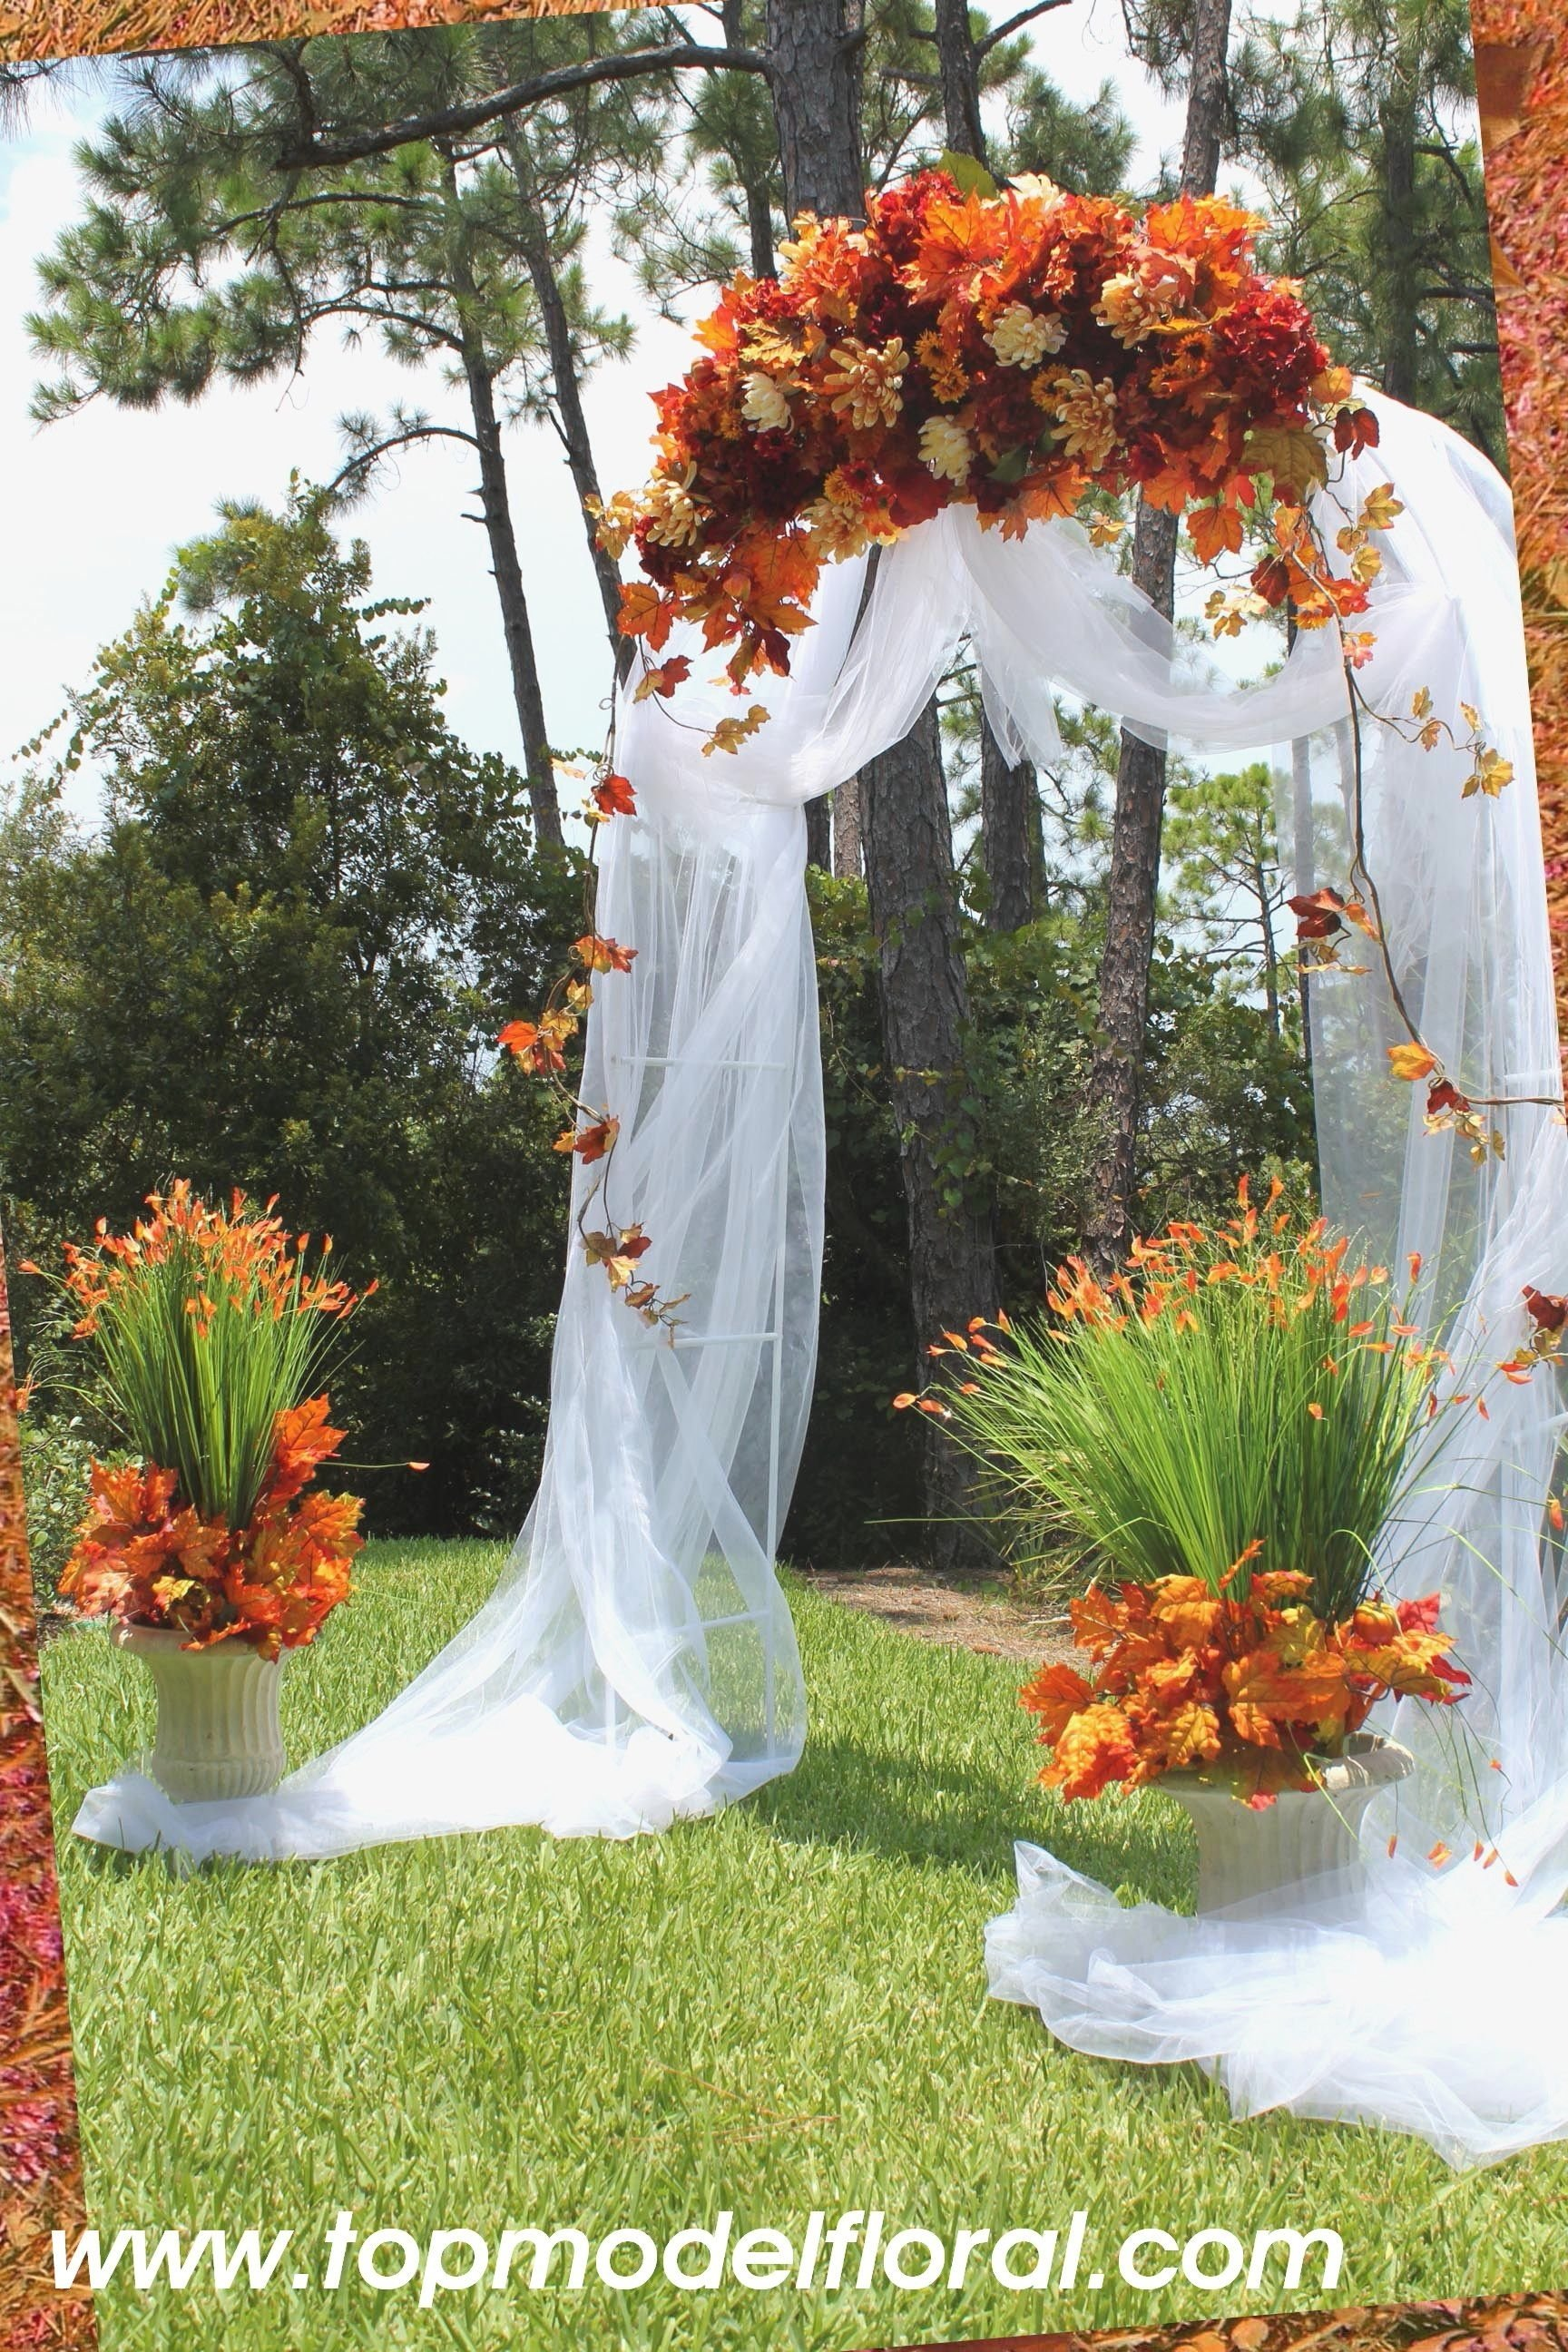 10 elegant simple wedding ideas for fall 10 elegant simple wedding ideas for fall simple ways to decorate wedding arch fall wedding arch junglespirit Image collections